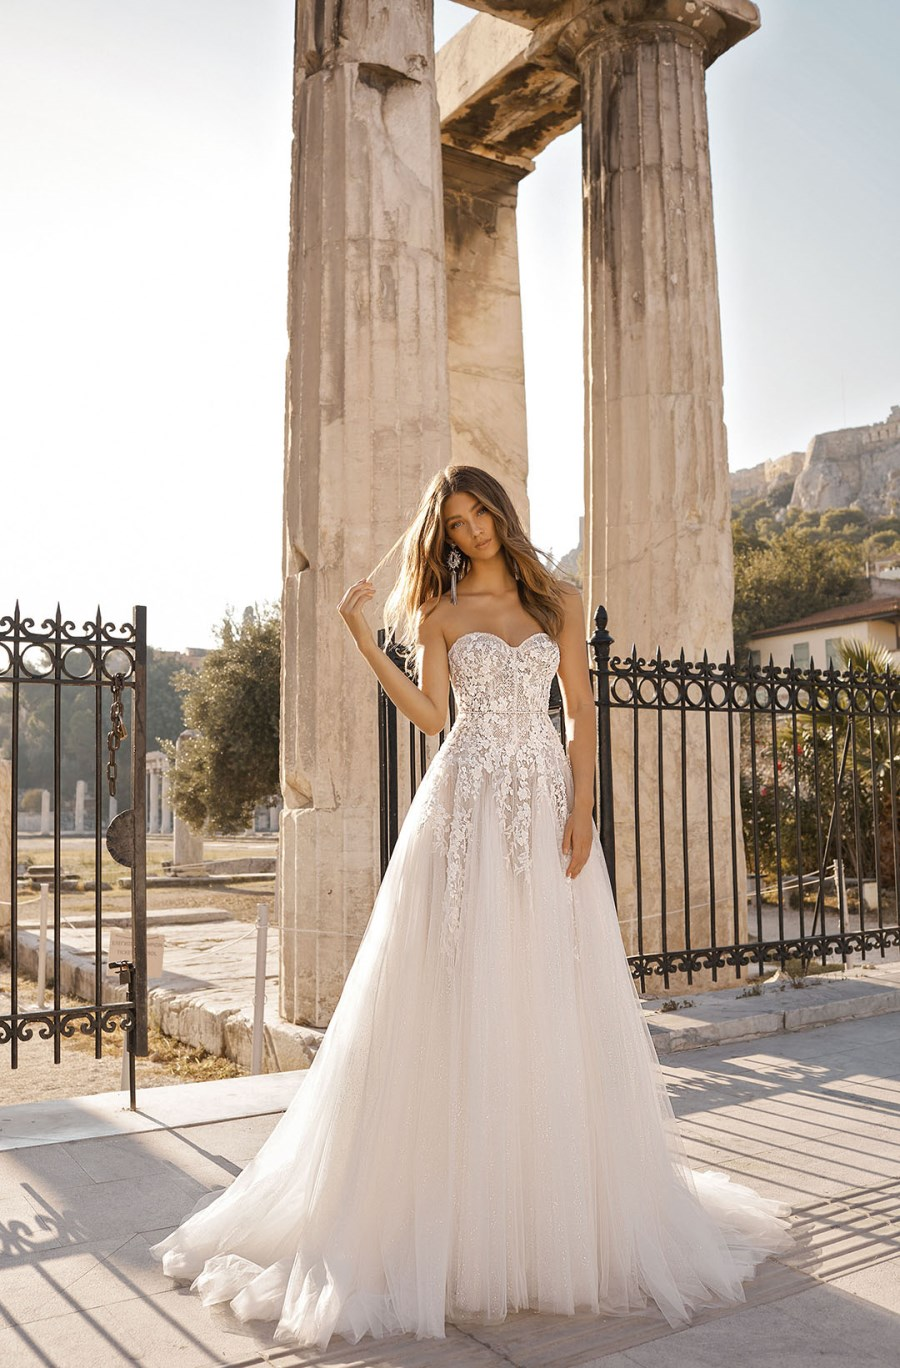 berta-wedding-dress-2019-1 (5)_1